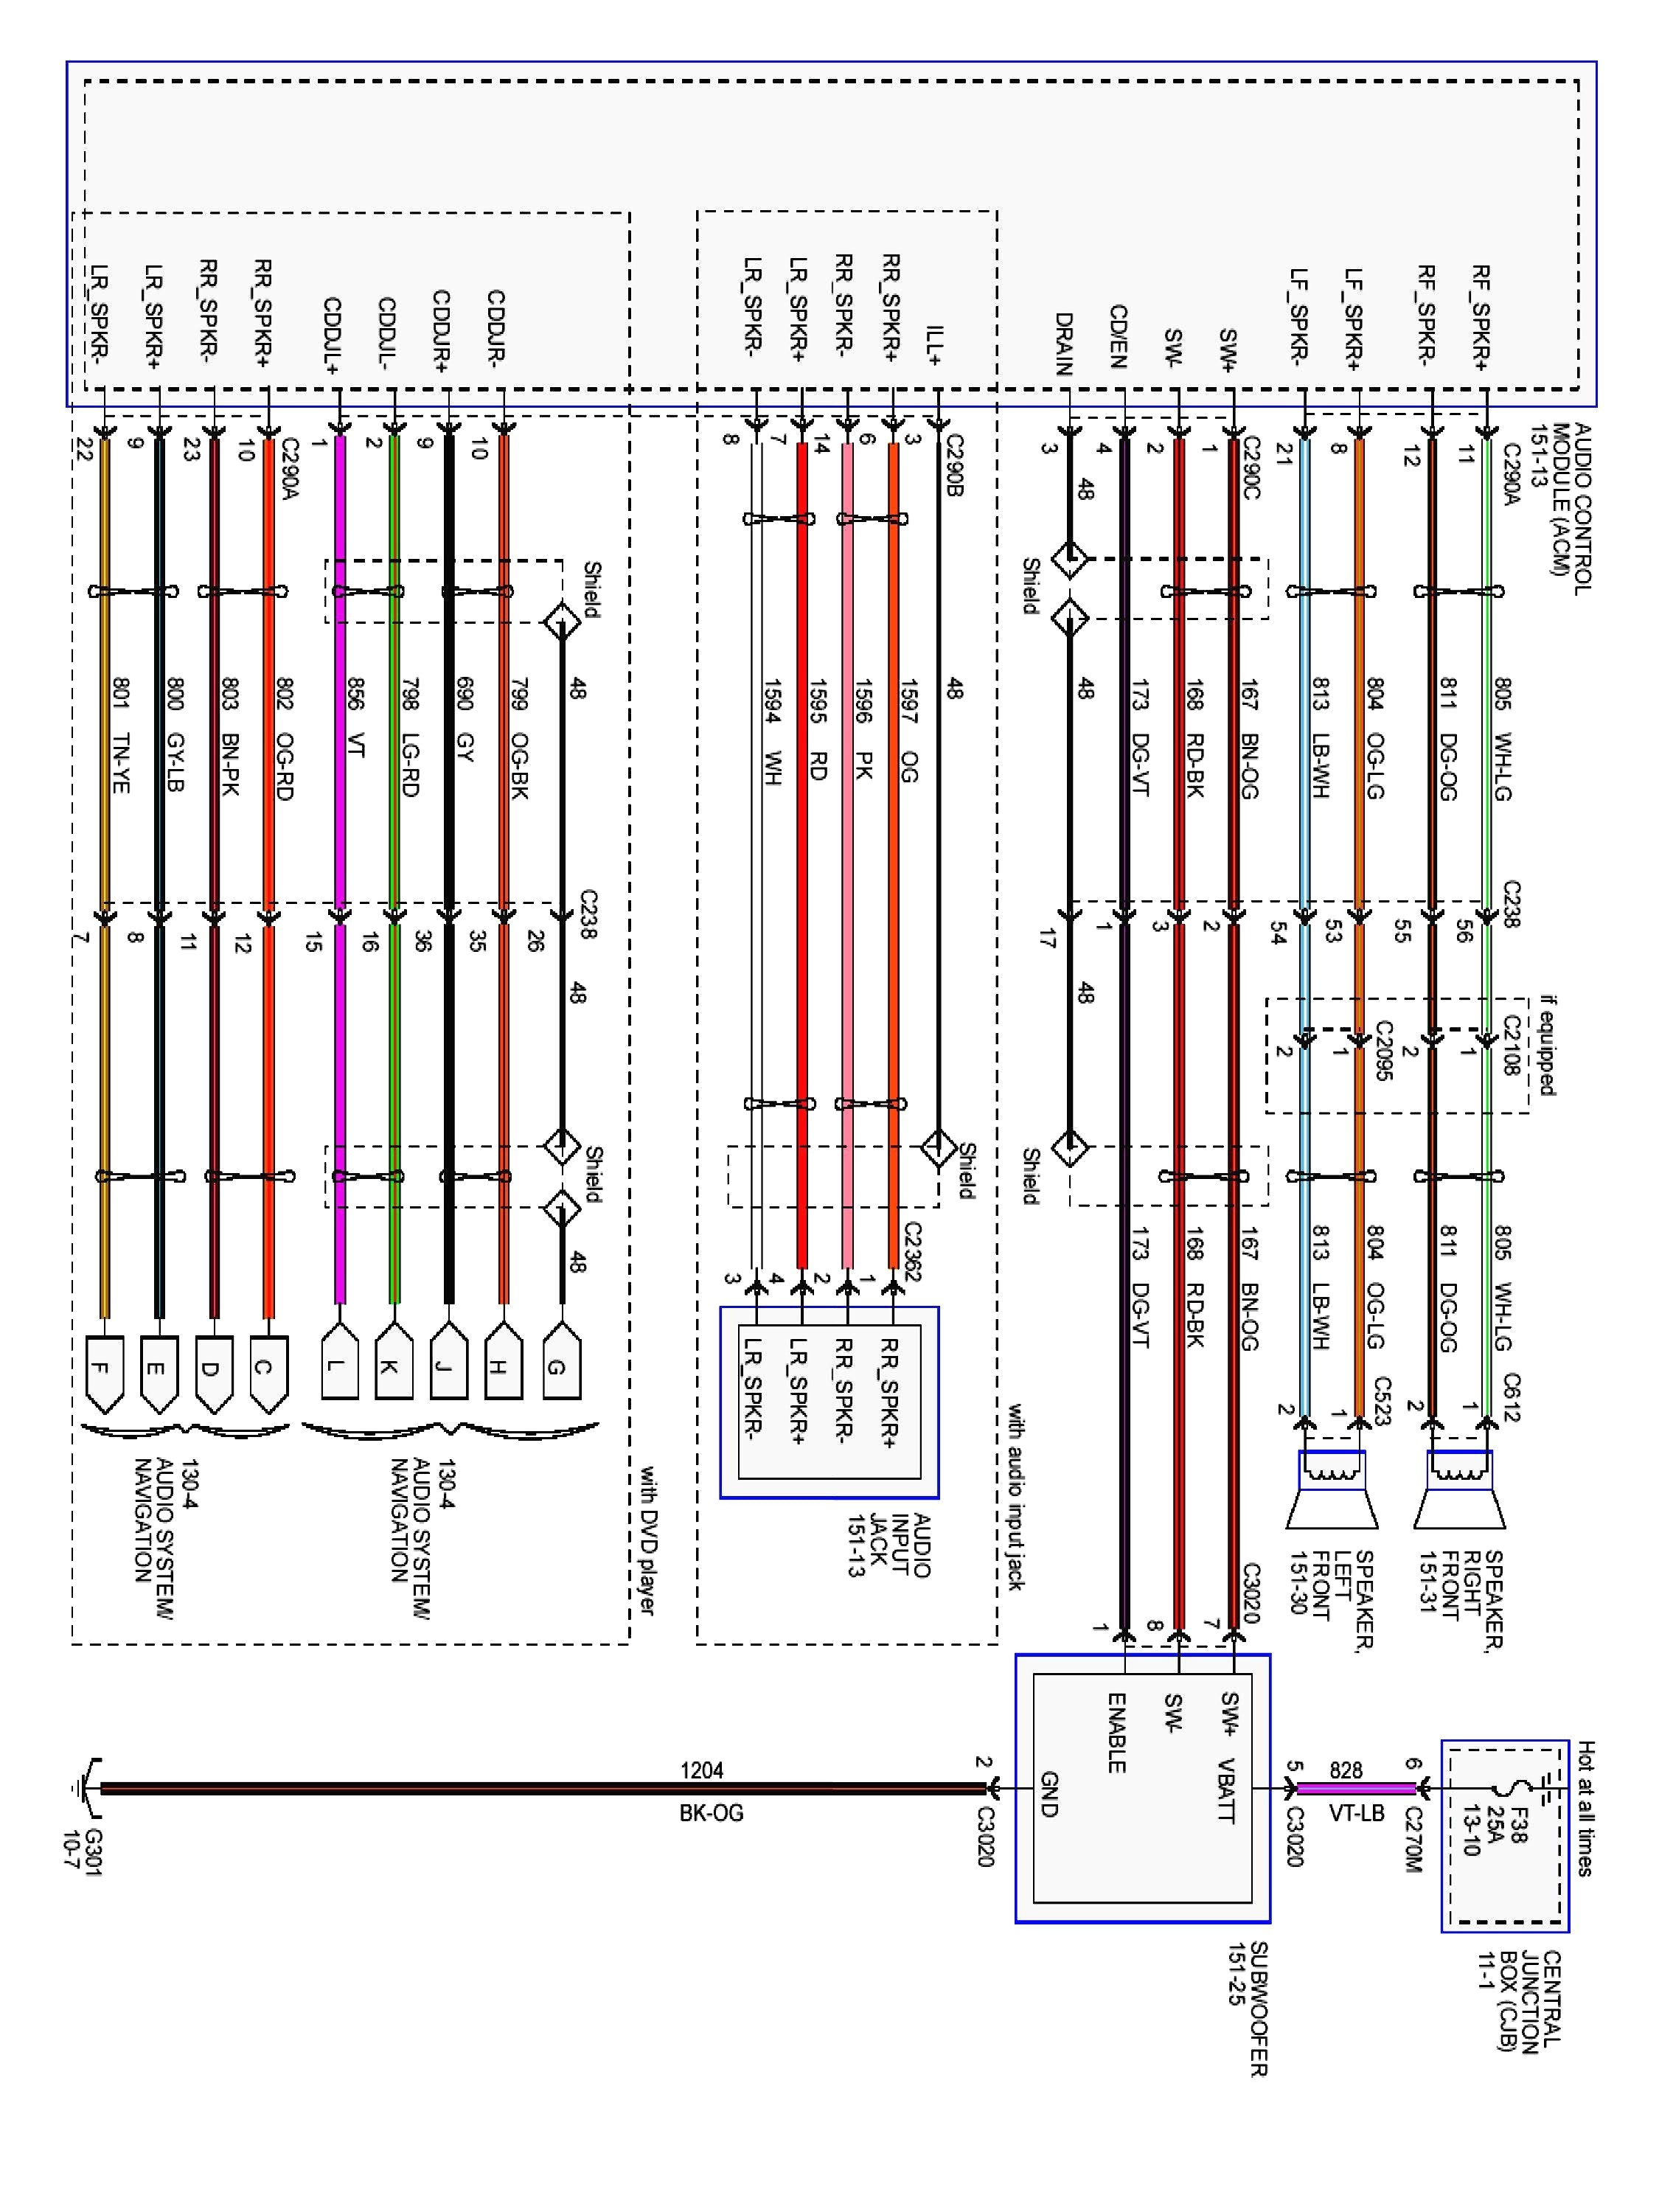 2002 ford Escape Radio Wiring Diagram 94 ford Ranger Radio Wiring Diagram  for 2004 Wiring Diagram